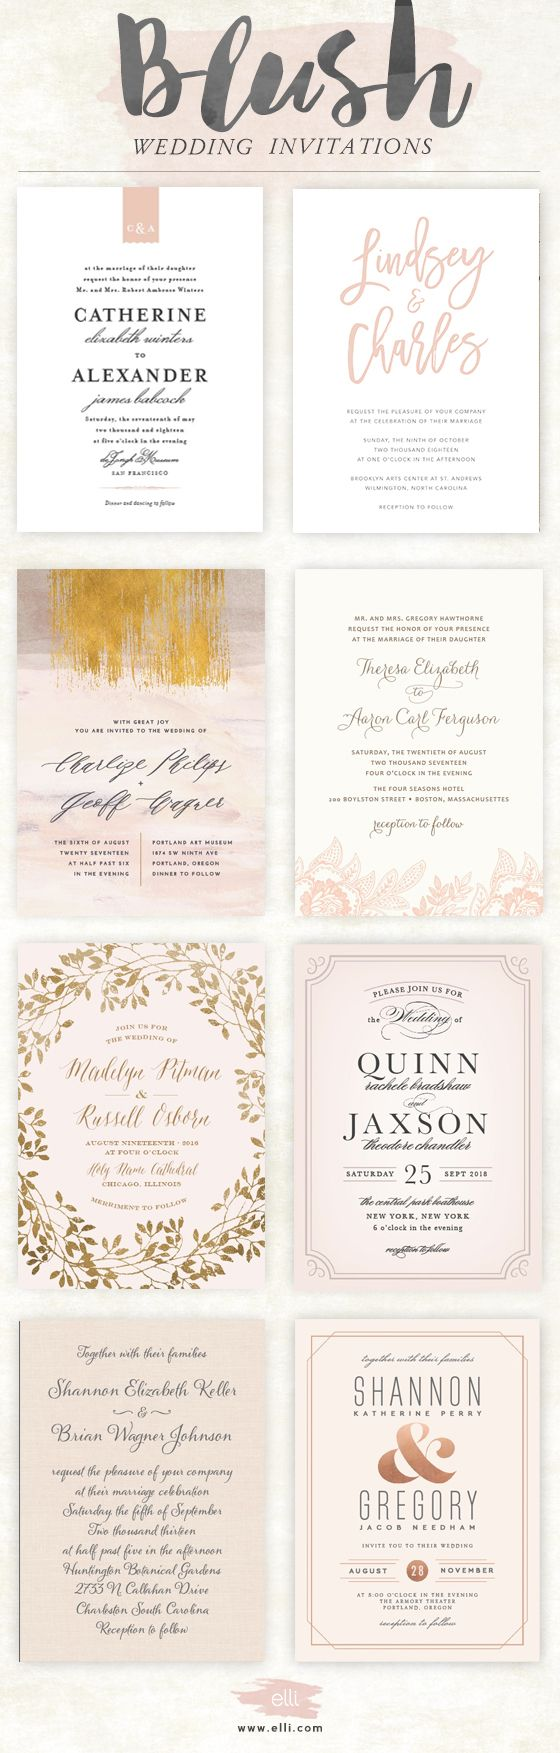 gorgeous blush pink wedding invitations at ellicom